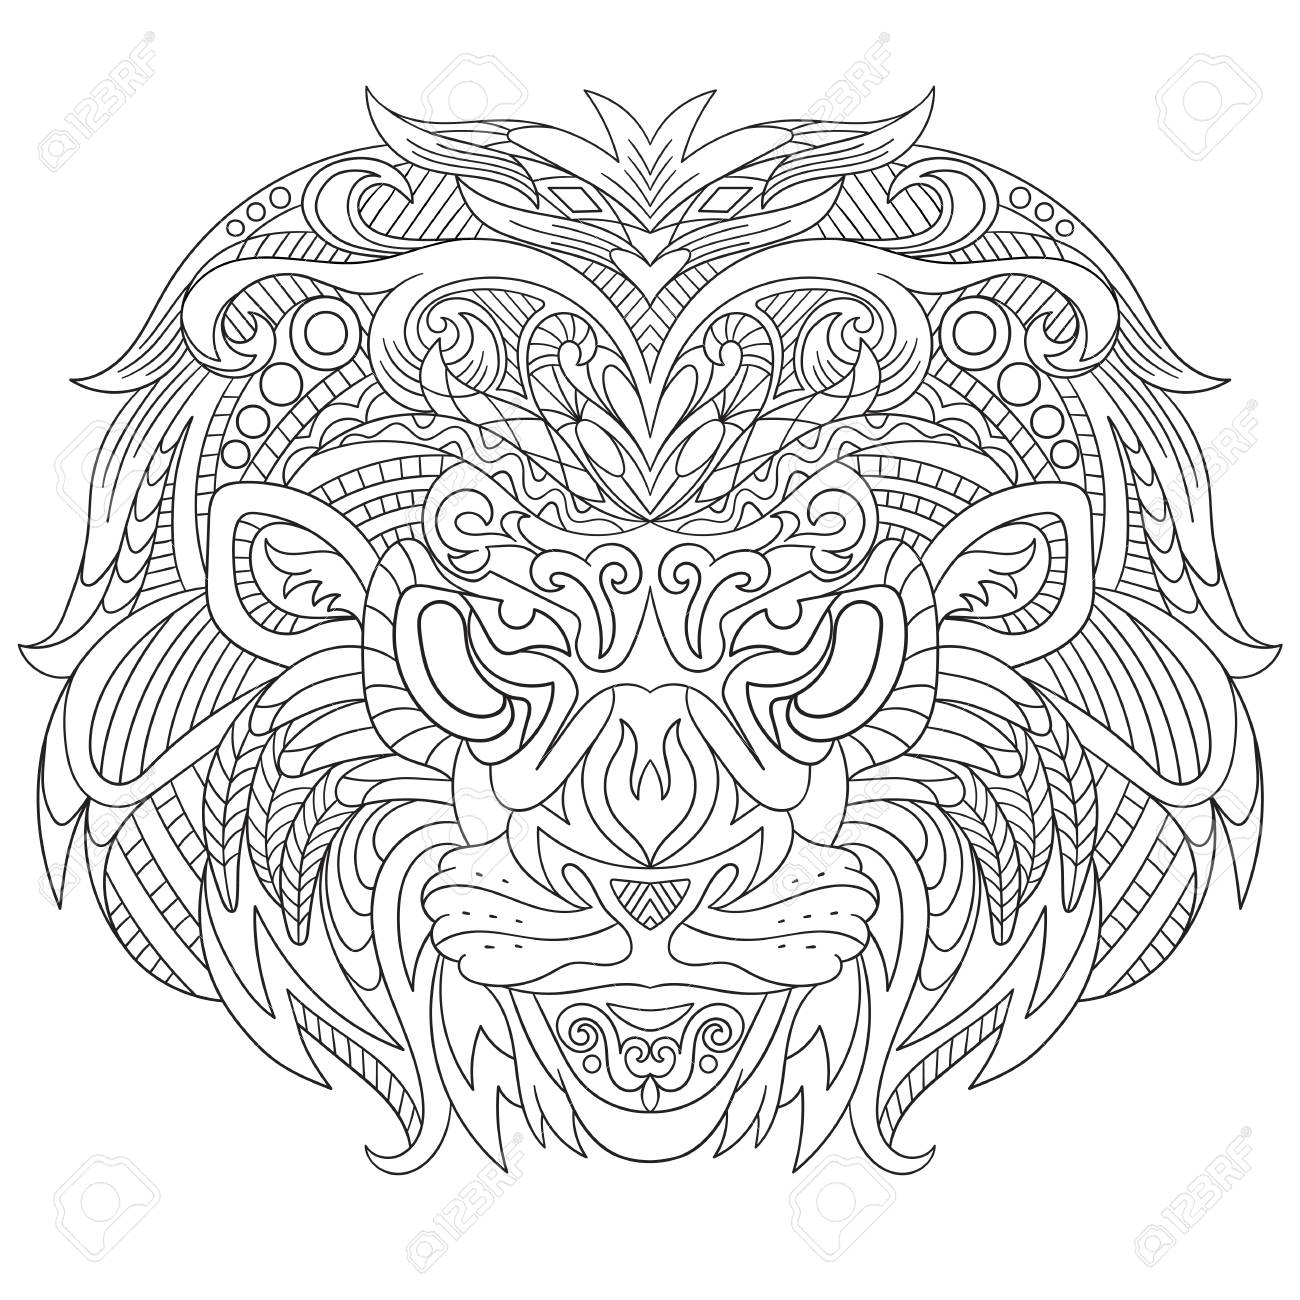 Detailed Coloring Books For Kids: Zendoodle Animal Designs; Lion ... | 1300x1300